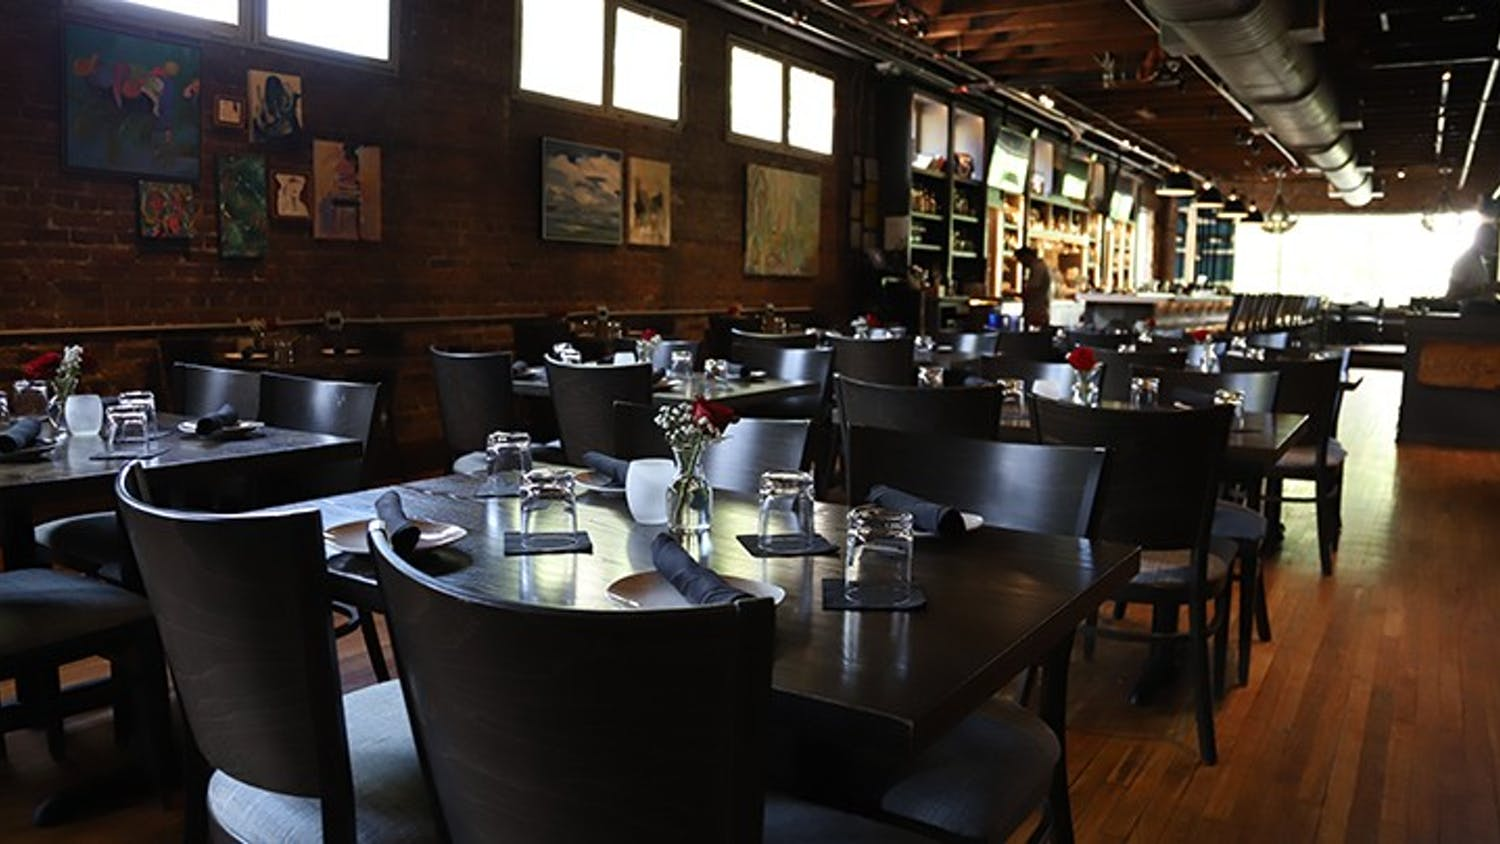 The inside of Hendrix , which is located above The Woody, includes many nicely set tables and a large bar.